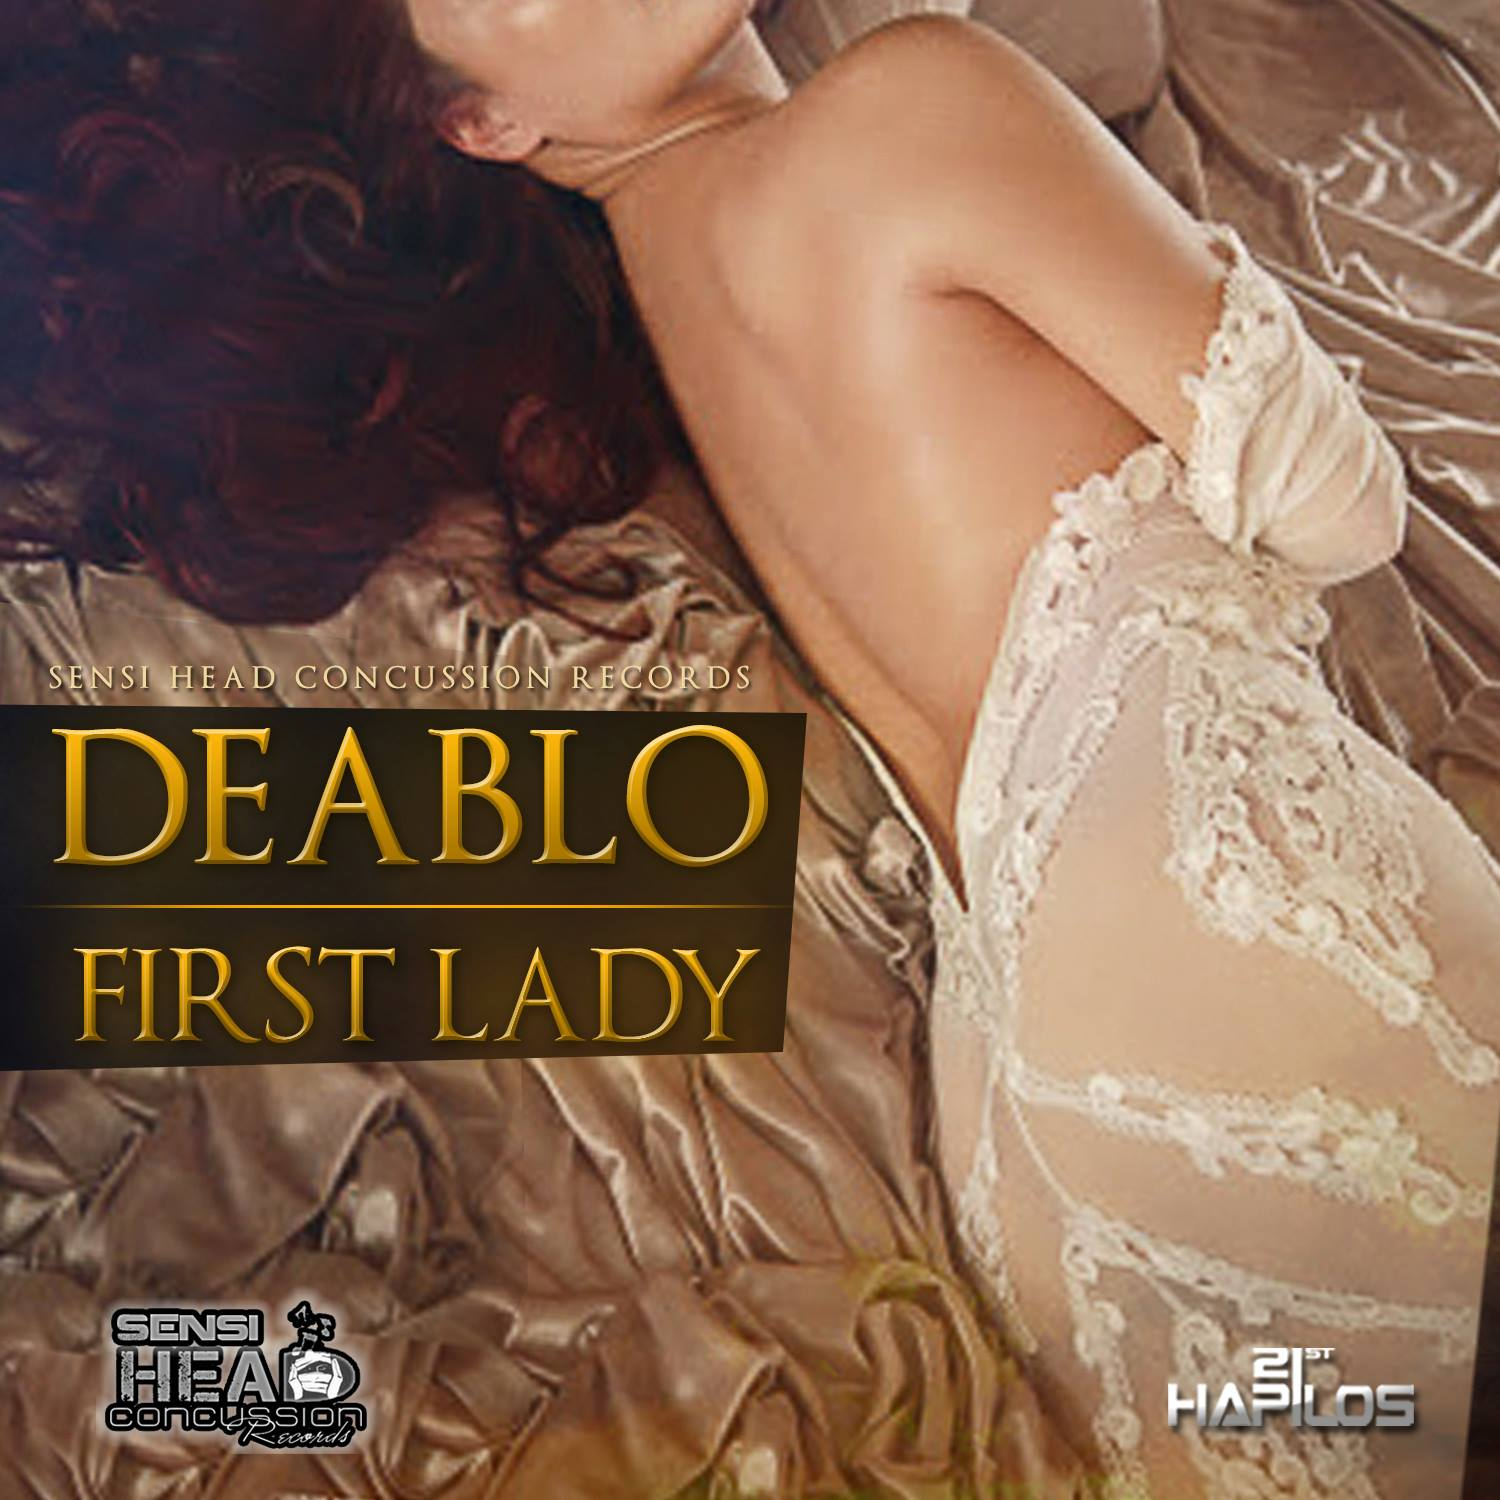 Deablo-First-Lady-Produced-By-Sensi-Head-Concussion-Records-Cover